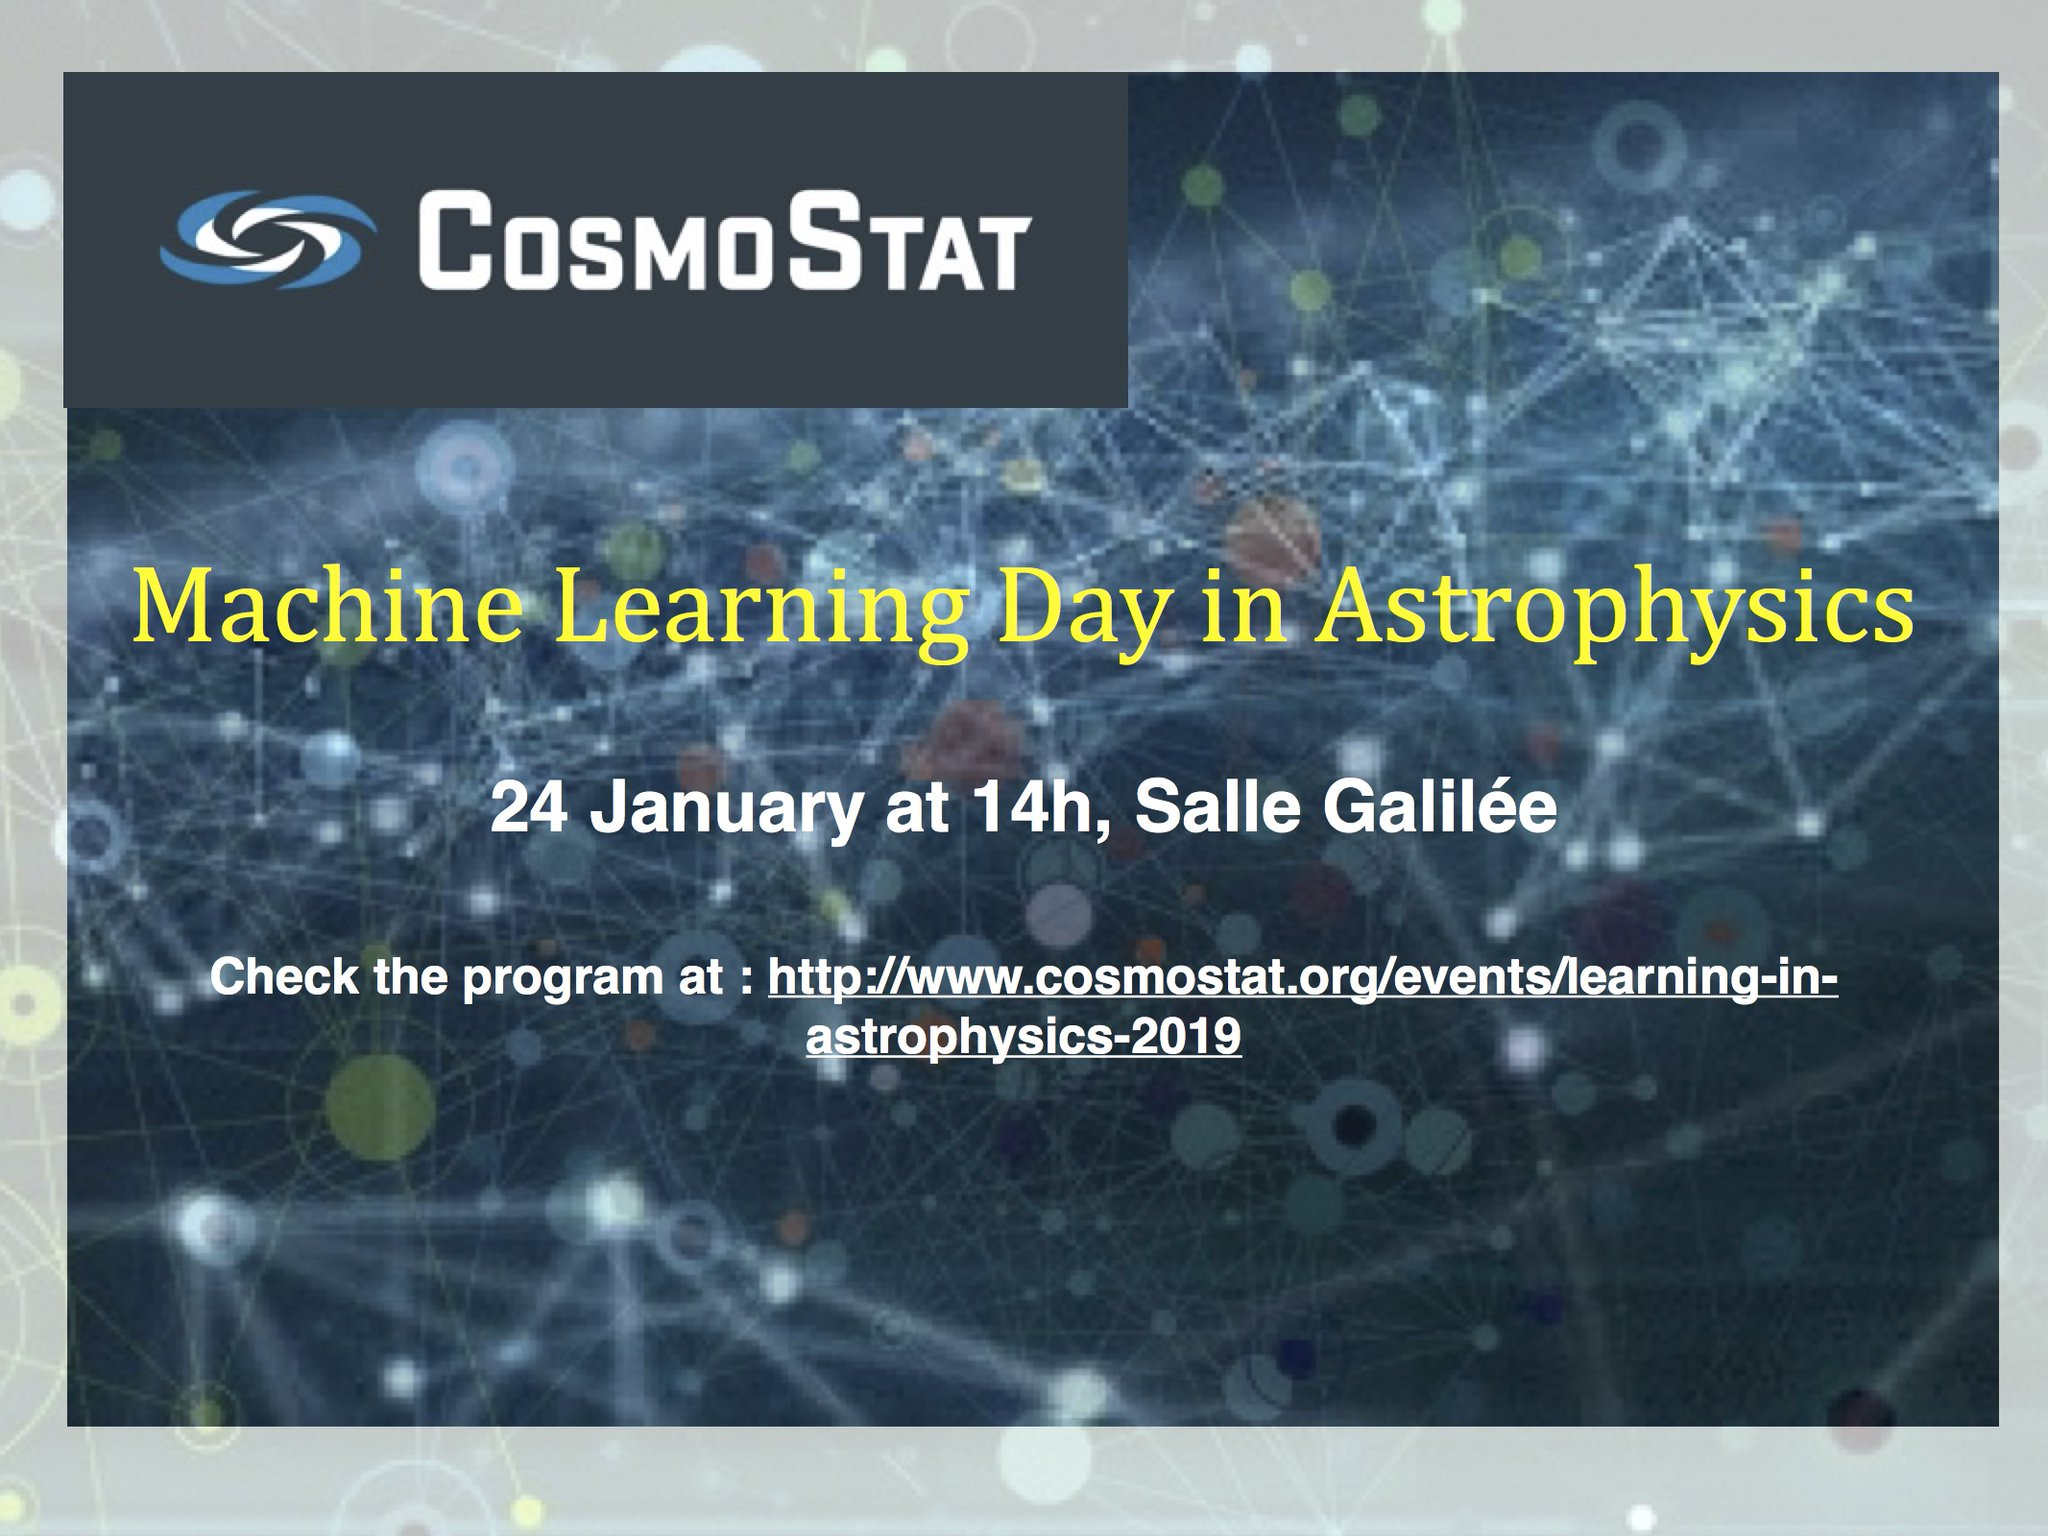 Cosmostat Day on Machine Learning in Astrophysics